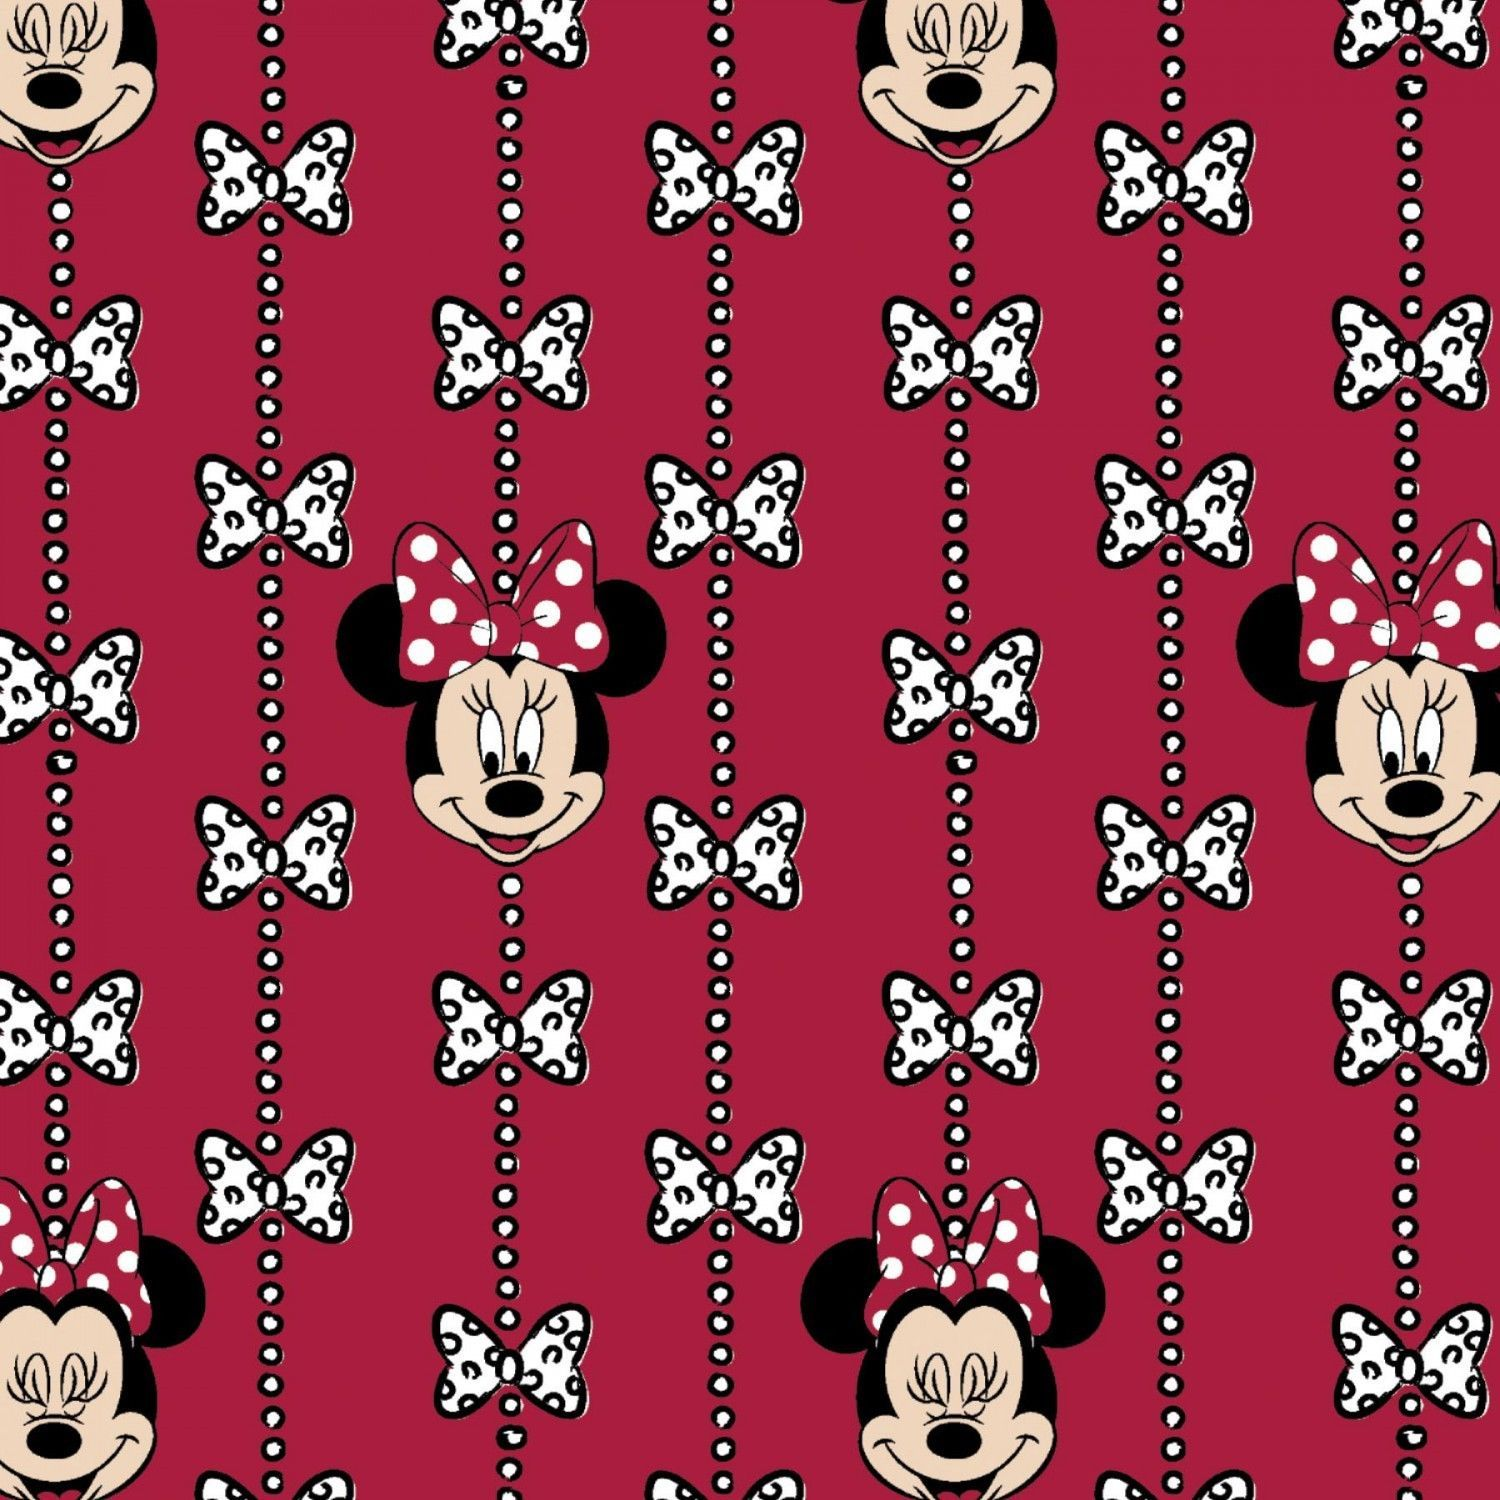 Red flannel fabric  Disney Minnie Mouse Bow Stripe Flanne Red  cotton flannel fabric